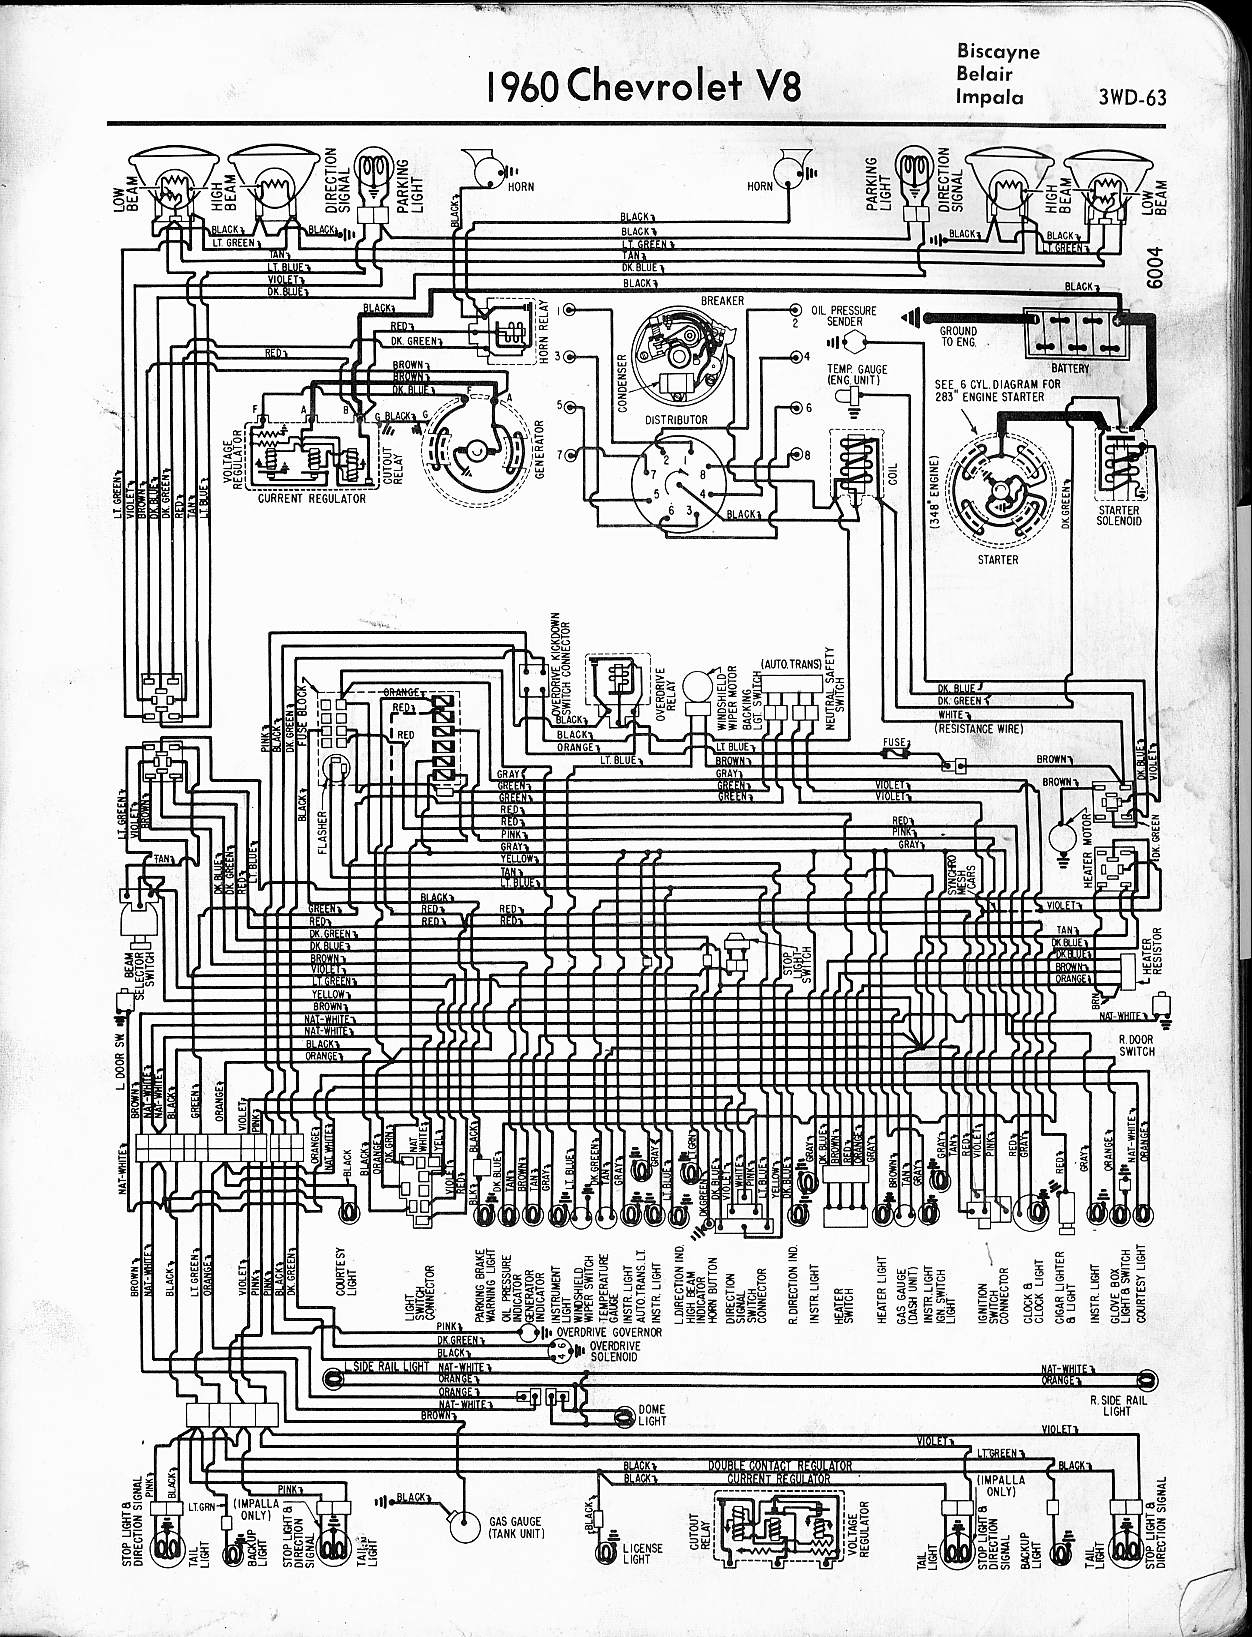 2003 chevy impala wiring diagram Collection-1960 V8 Biscayne Belair Impala 16-m